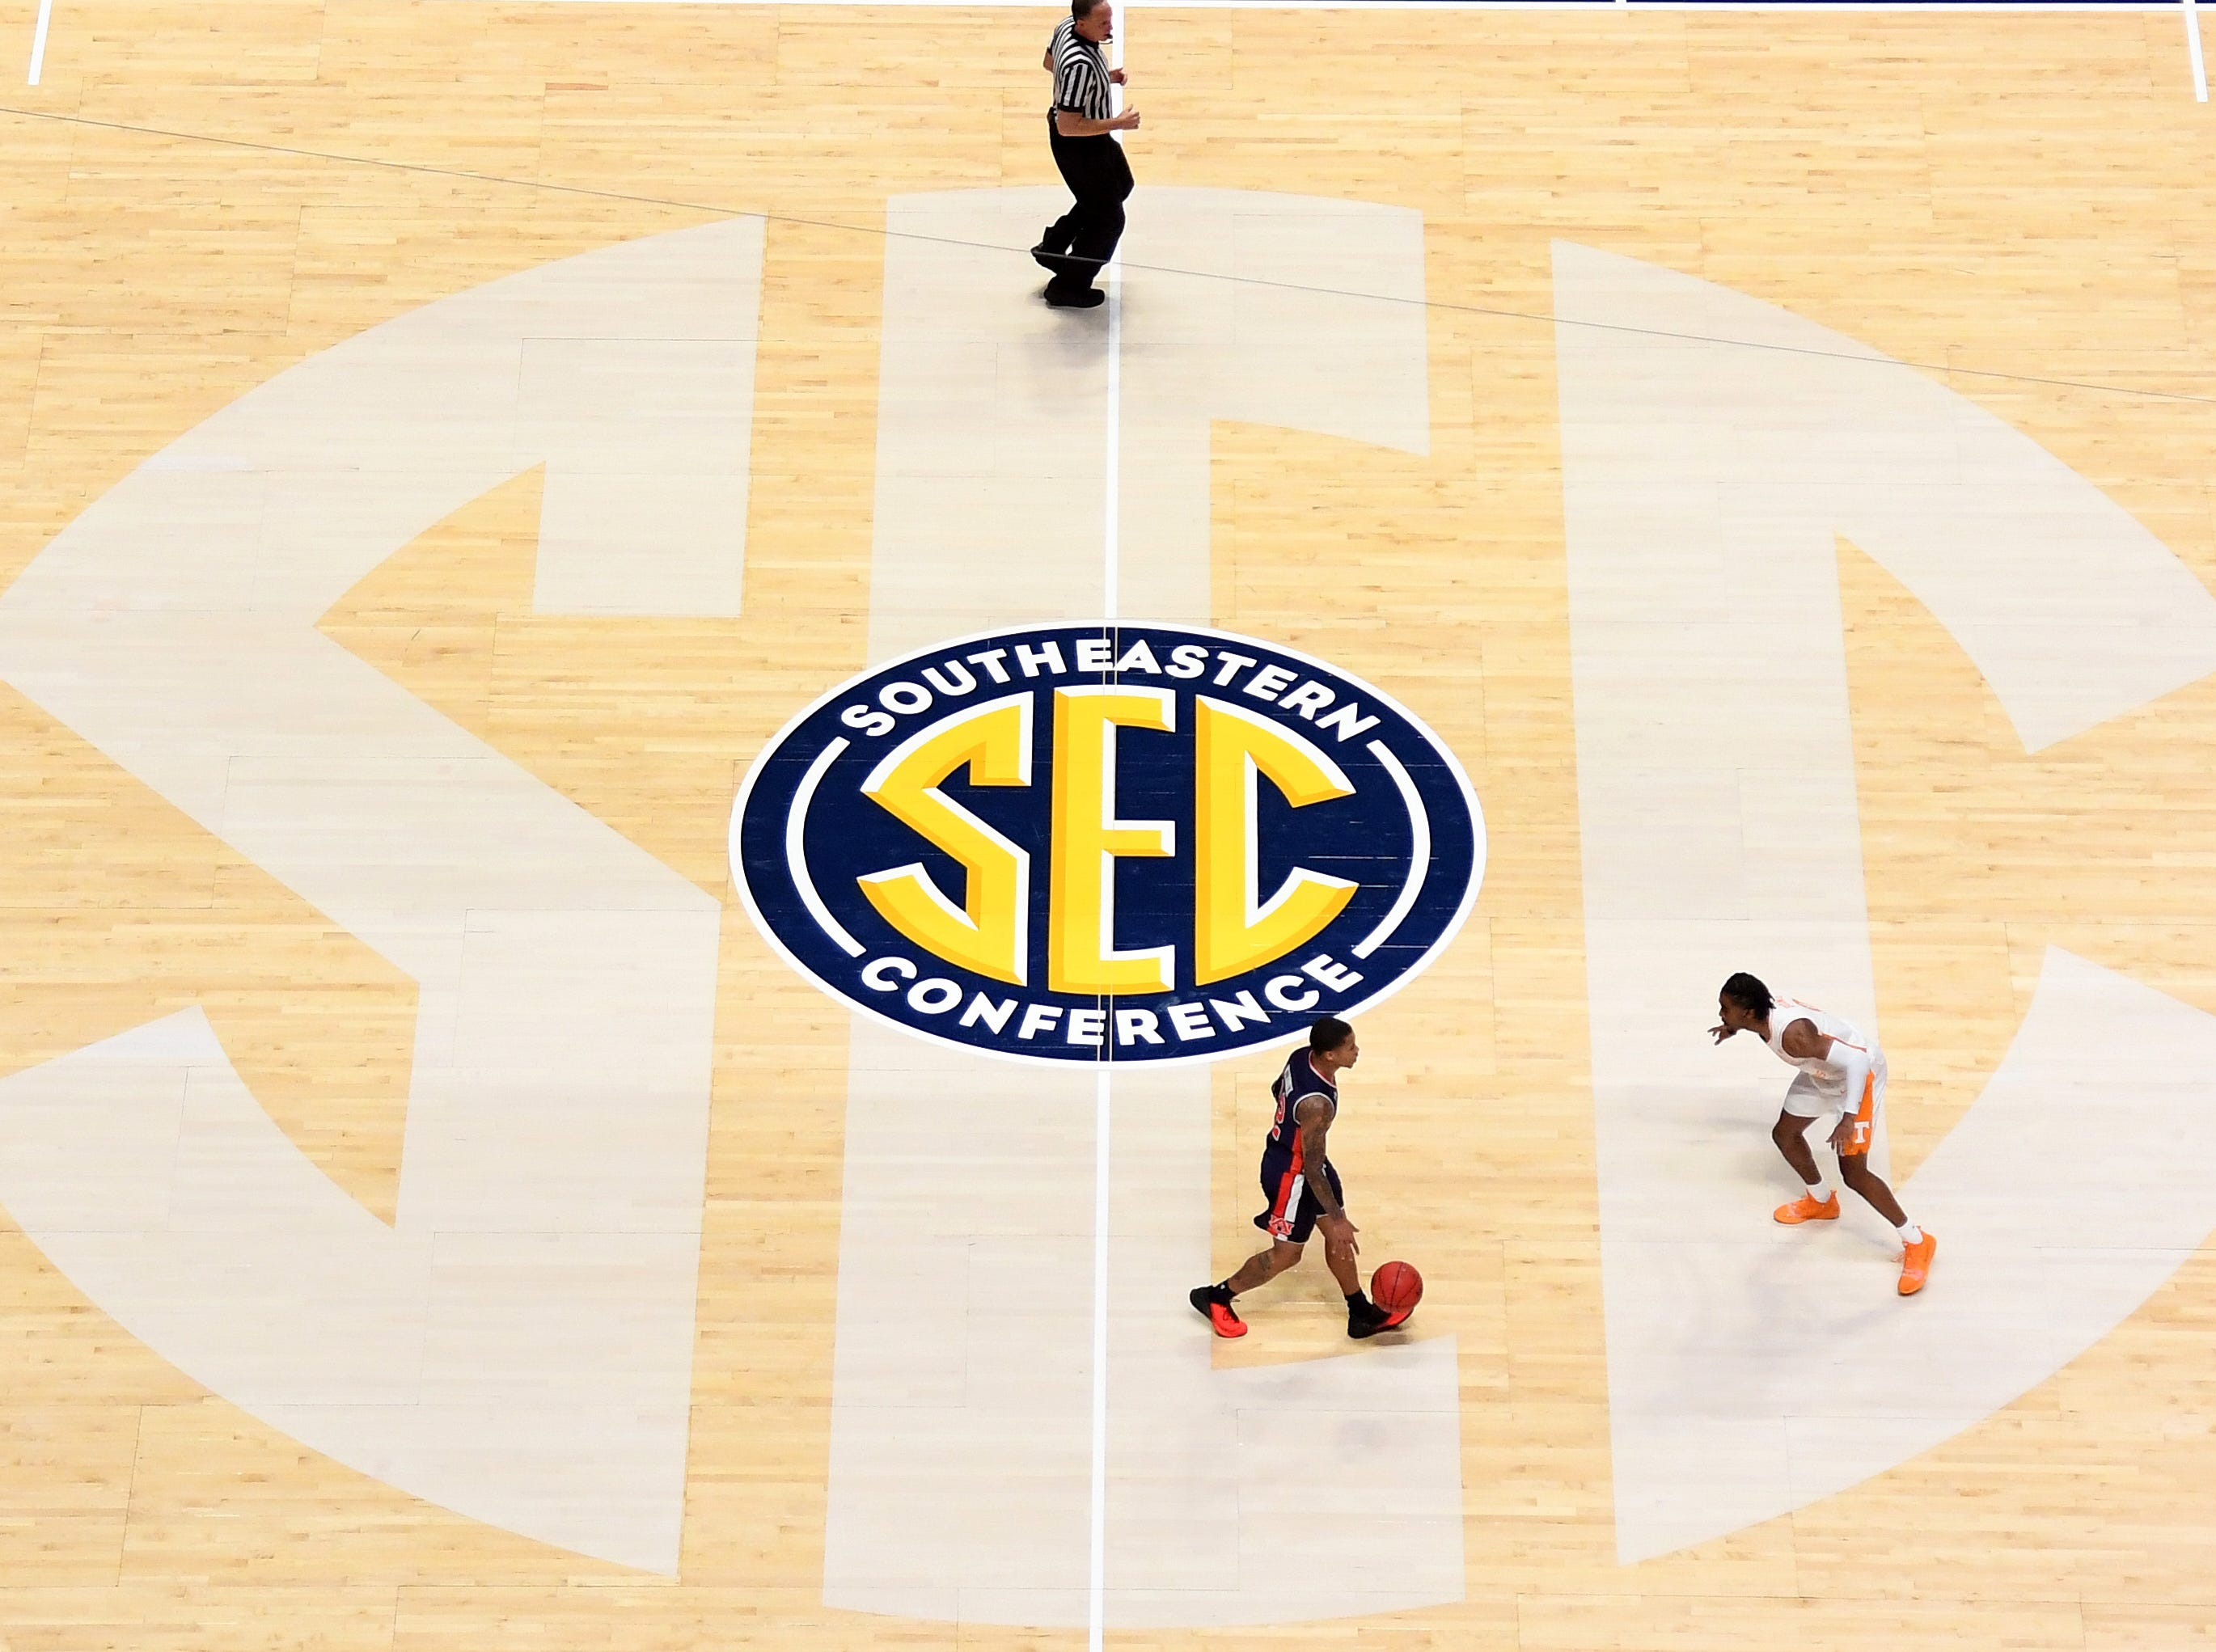 Mar 17, 2019; Nashville, TN, USA; Auburn Tigers guard J'Von McCormick (12) dribbles the ball up the floor against Tennessee Volunteers guard Jordan Bone (0) during the first half in the SEC conference tournament championship game at Bridgestone Arena. Mandatory Credit: Christopher Hanewinckel-USA TODAY Sports